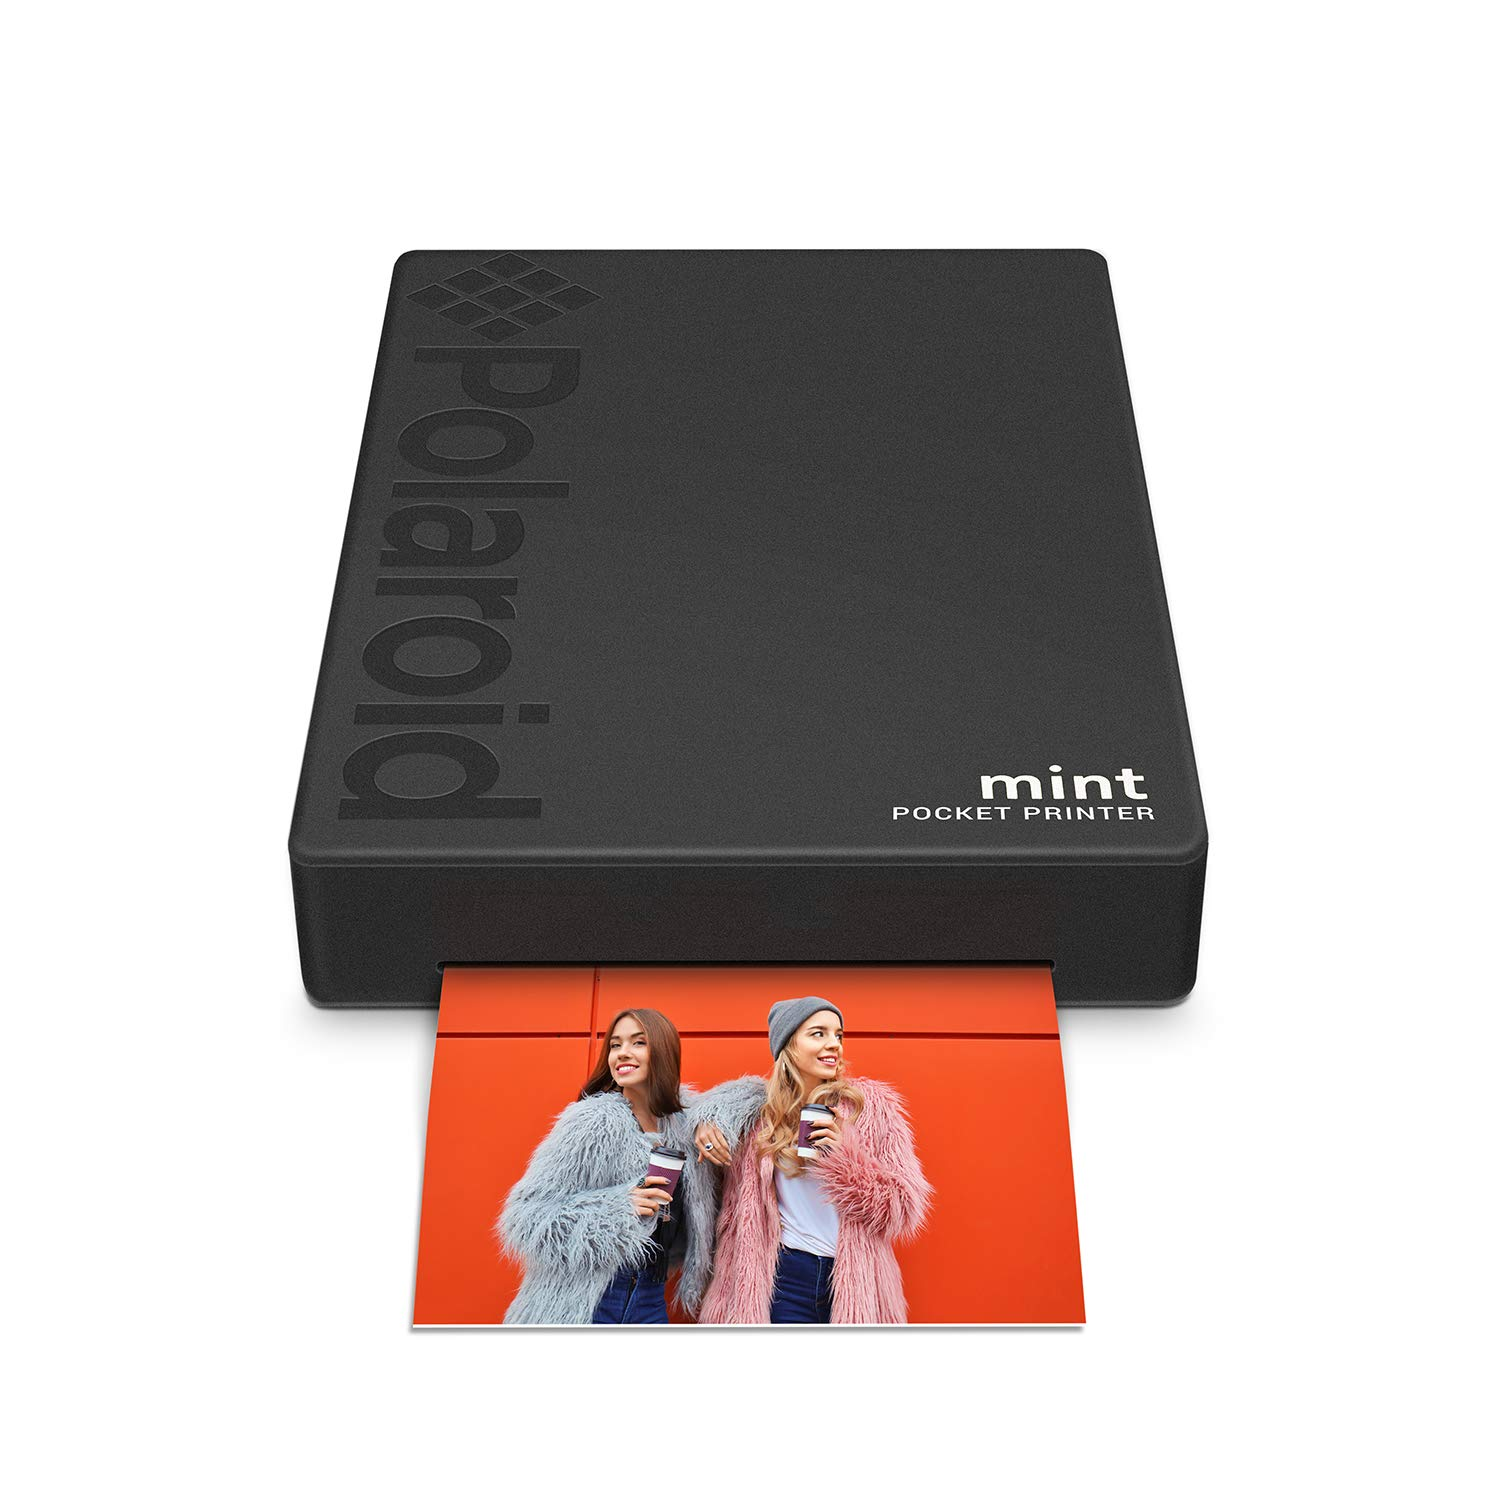 Polaroid Mint Pocket Printer W/Zink Zero Ink Technology & Built-in Bluetooth for Android & iOS Devices - Black POLMP02B